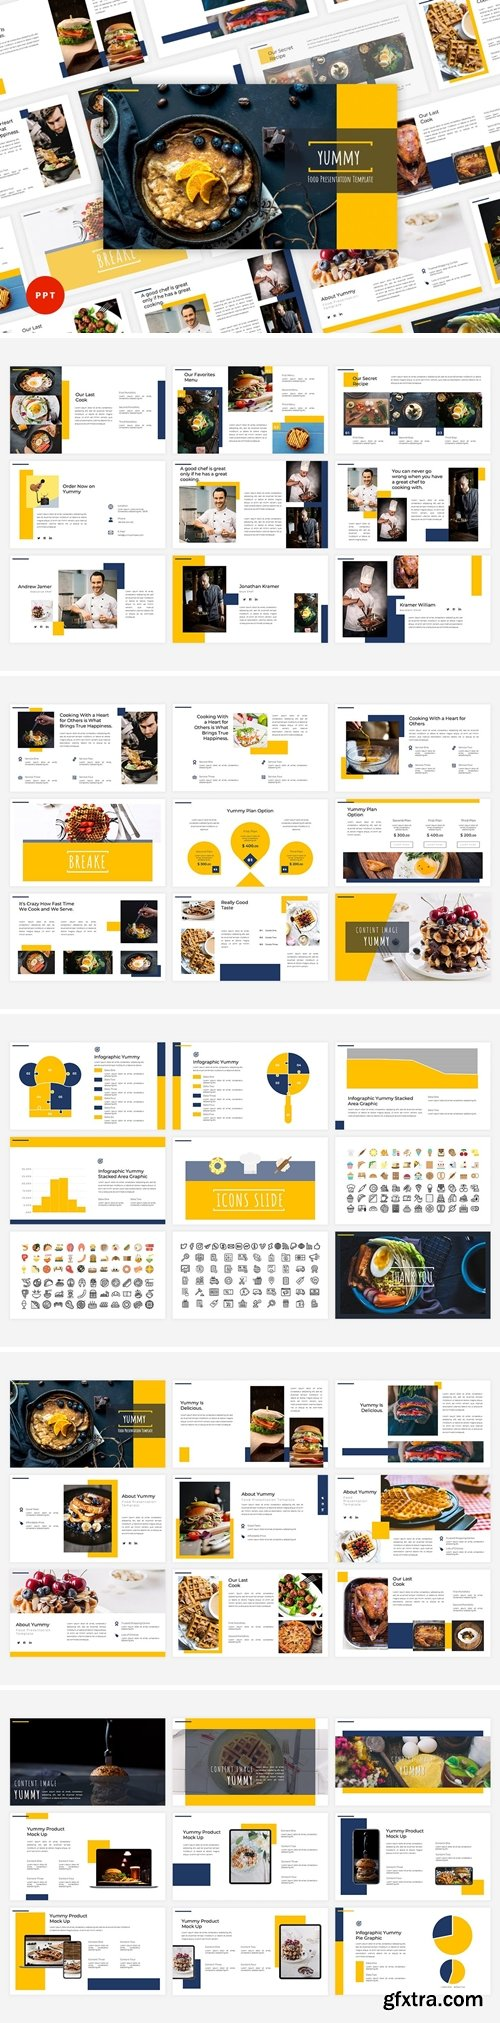 Yummy - Food Powerpoint, Keynote and Google Slides Templates